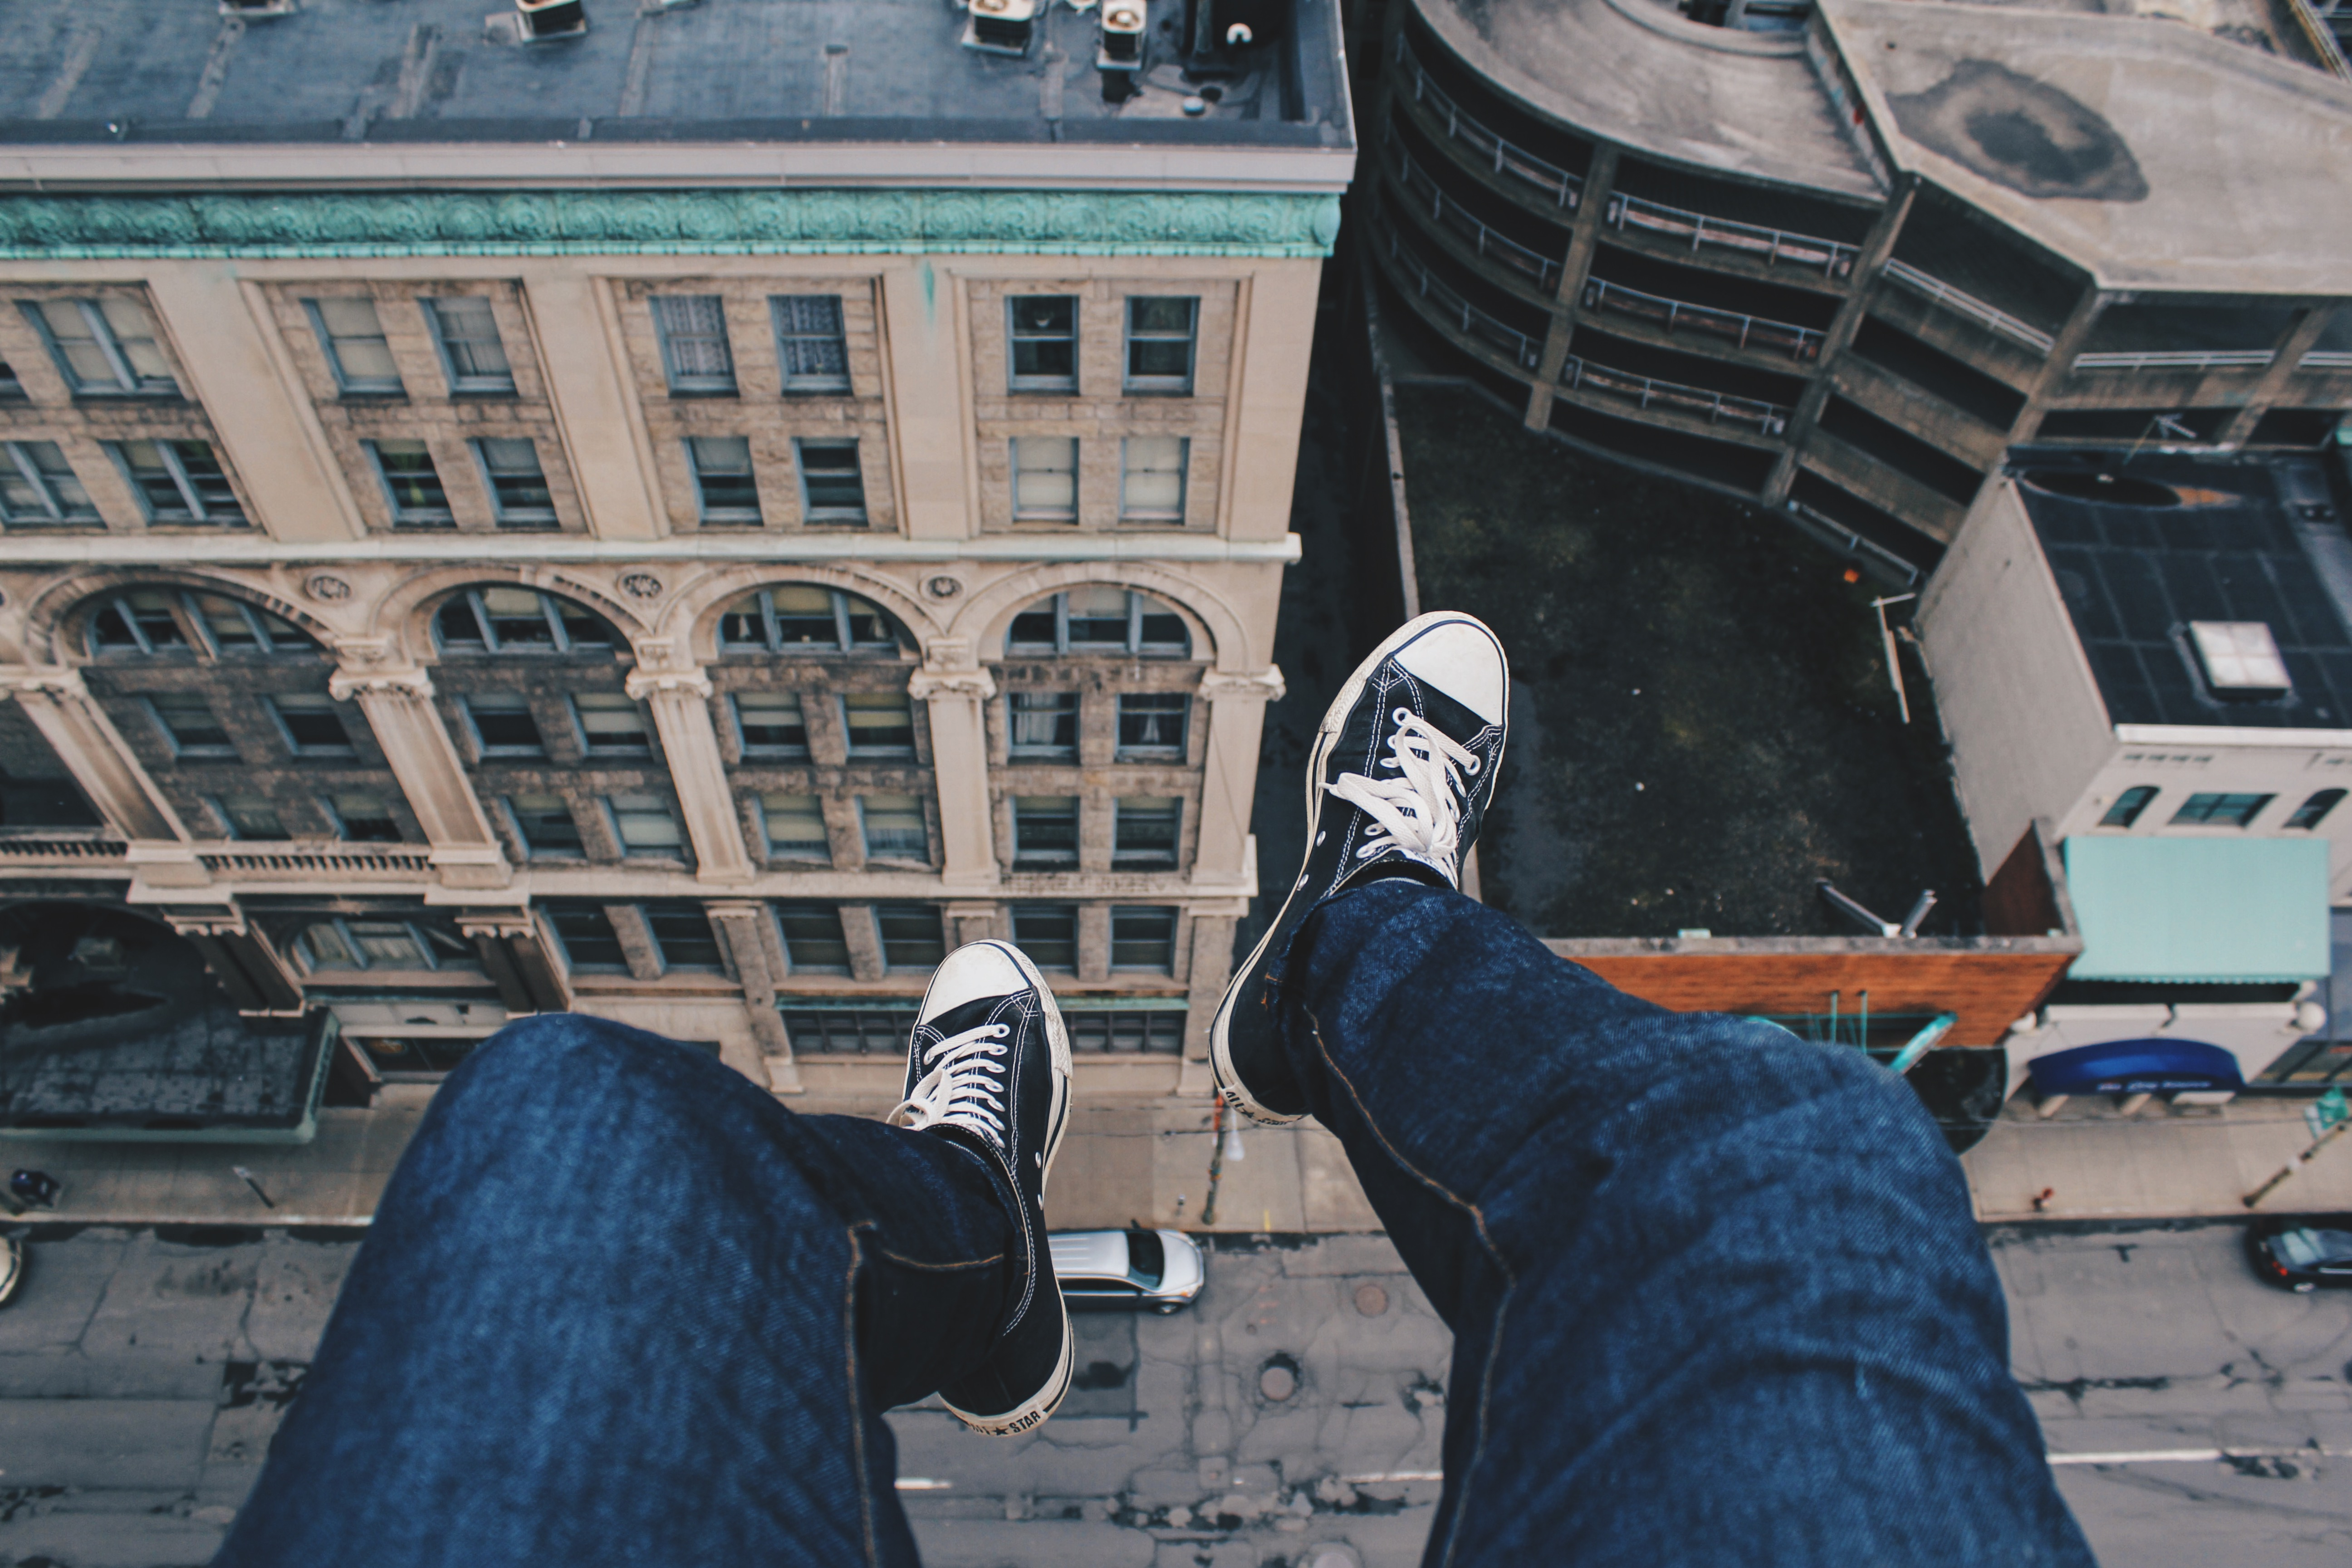 feet dangling from a building photo by jake ingle   ingle